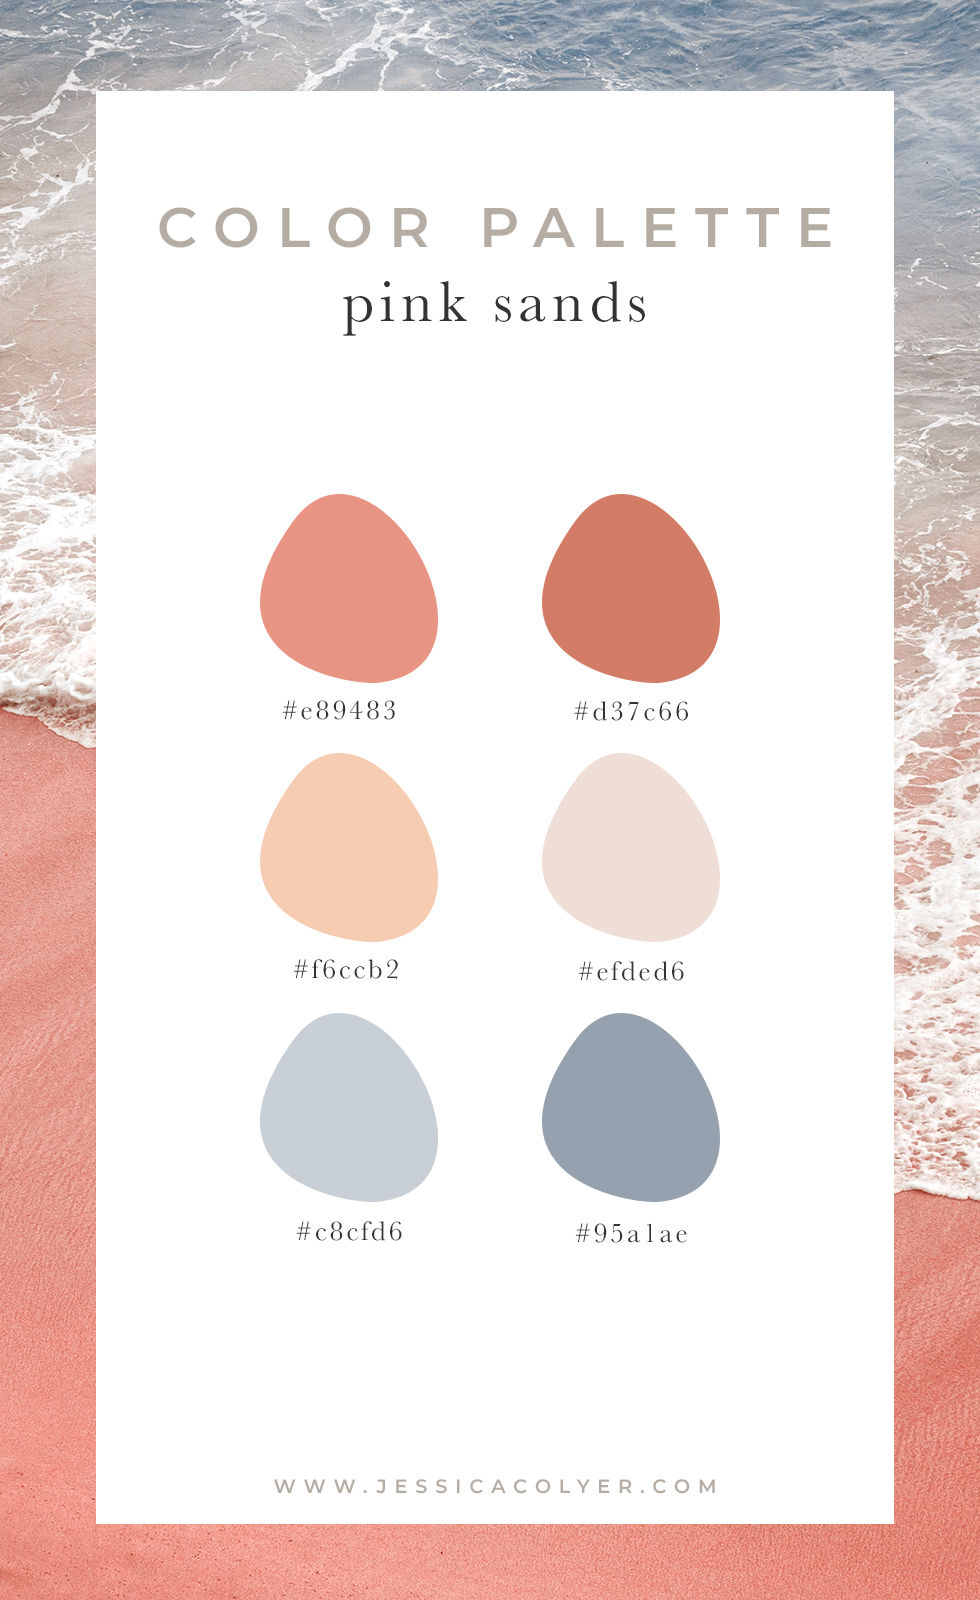 ColorPalette-PinkSands.jpg